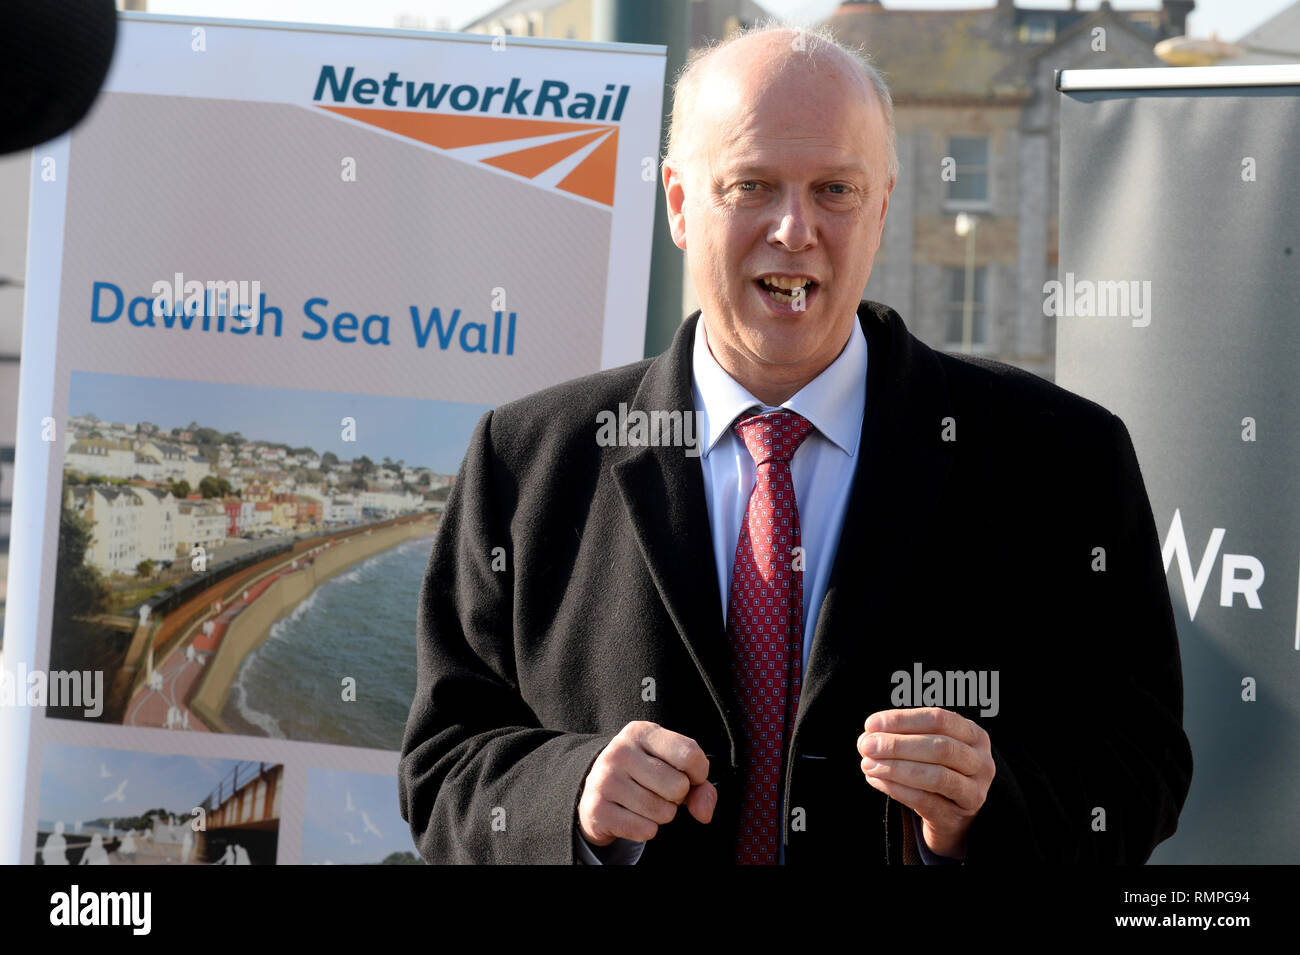 Dawlish, UK. 15th Feb, 2019. 15/02/2019  MP Chris Grayling visiting Dawlish. - Photo mandatory by-line: Andy Styles - Tel: 01626 872731 - Mobile: 07834214253 TQAS20190215B-011_C Credit: Andy Styles Photography/Alamy Live News - Stock Image